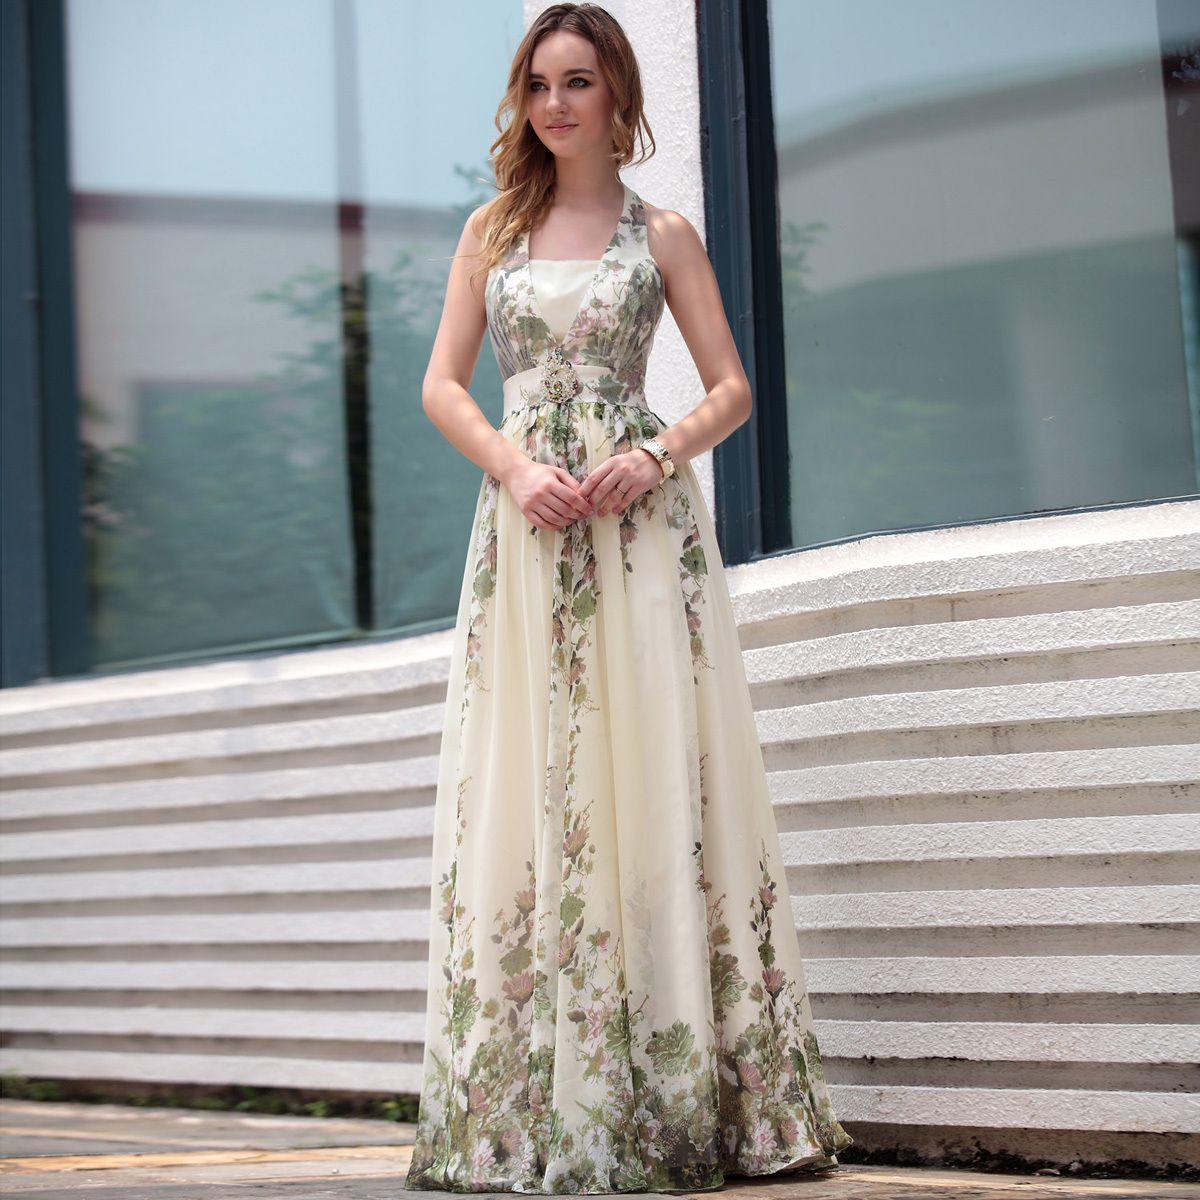 in the market you will come across so many types of wedding dresses which have bohemian